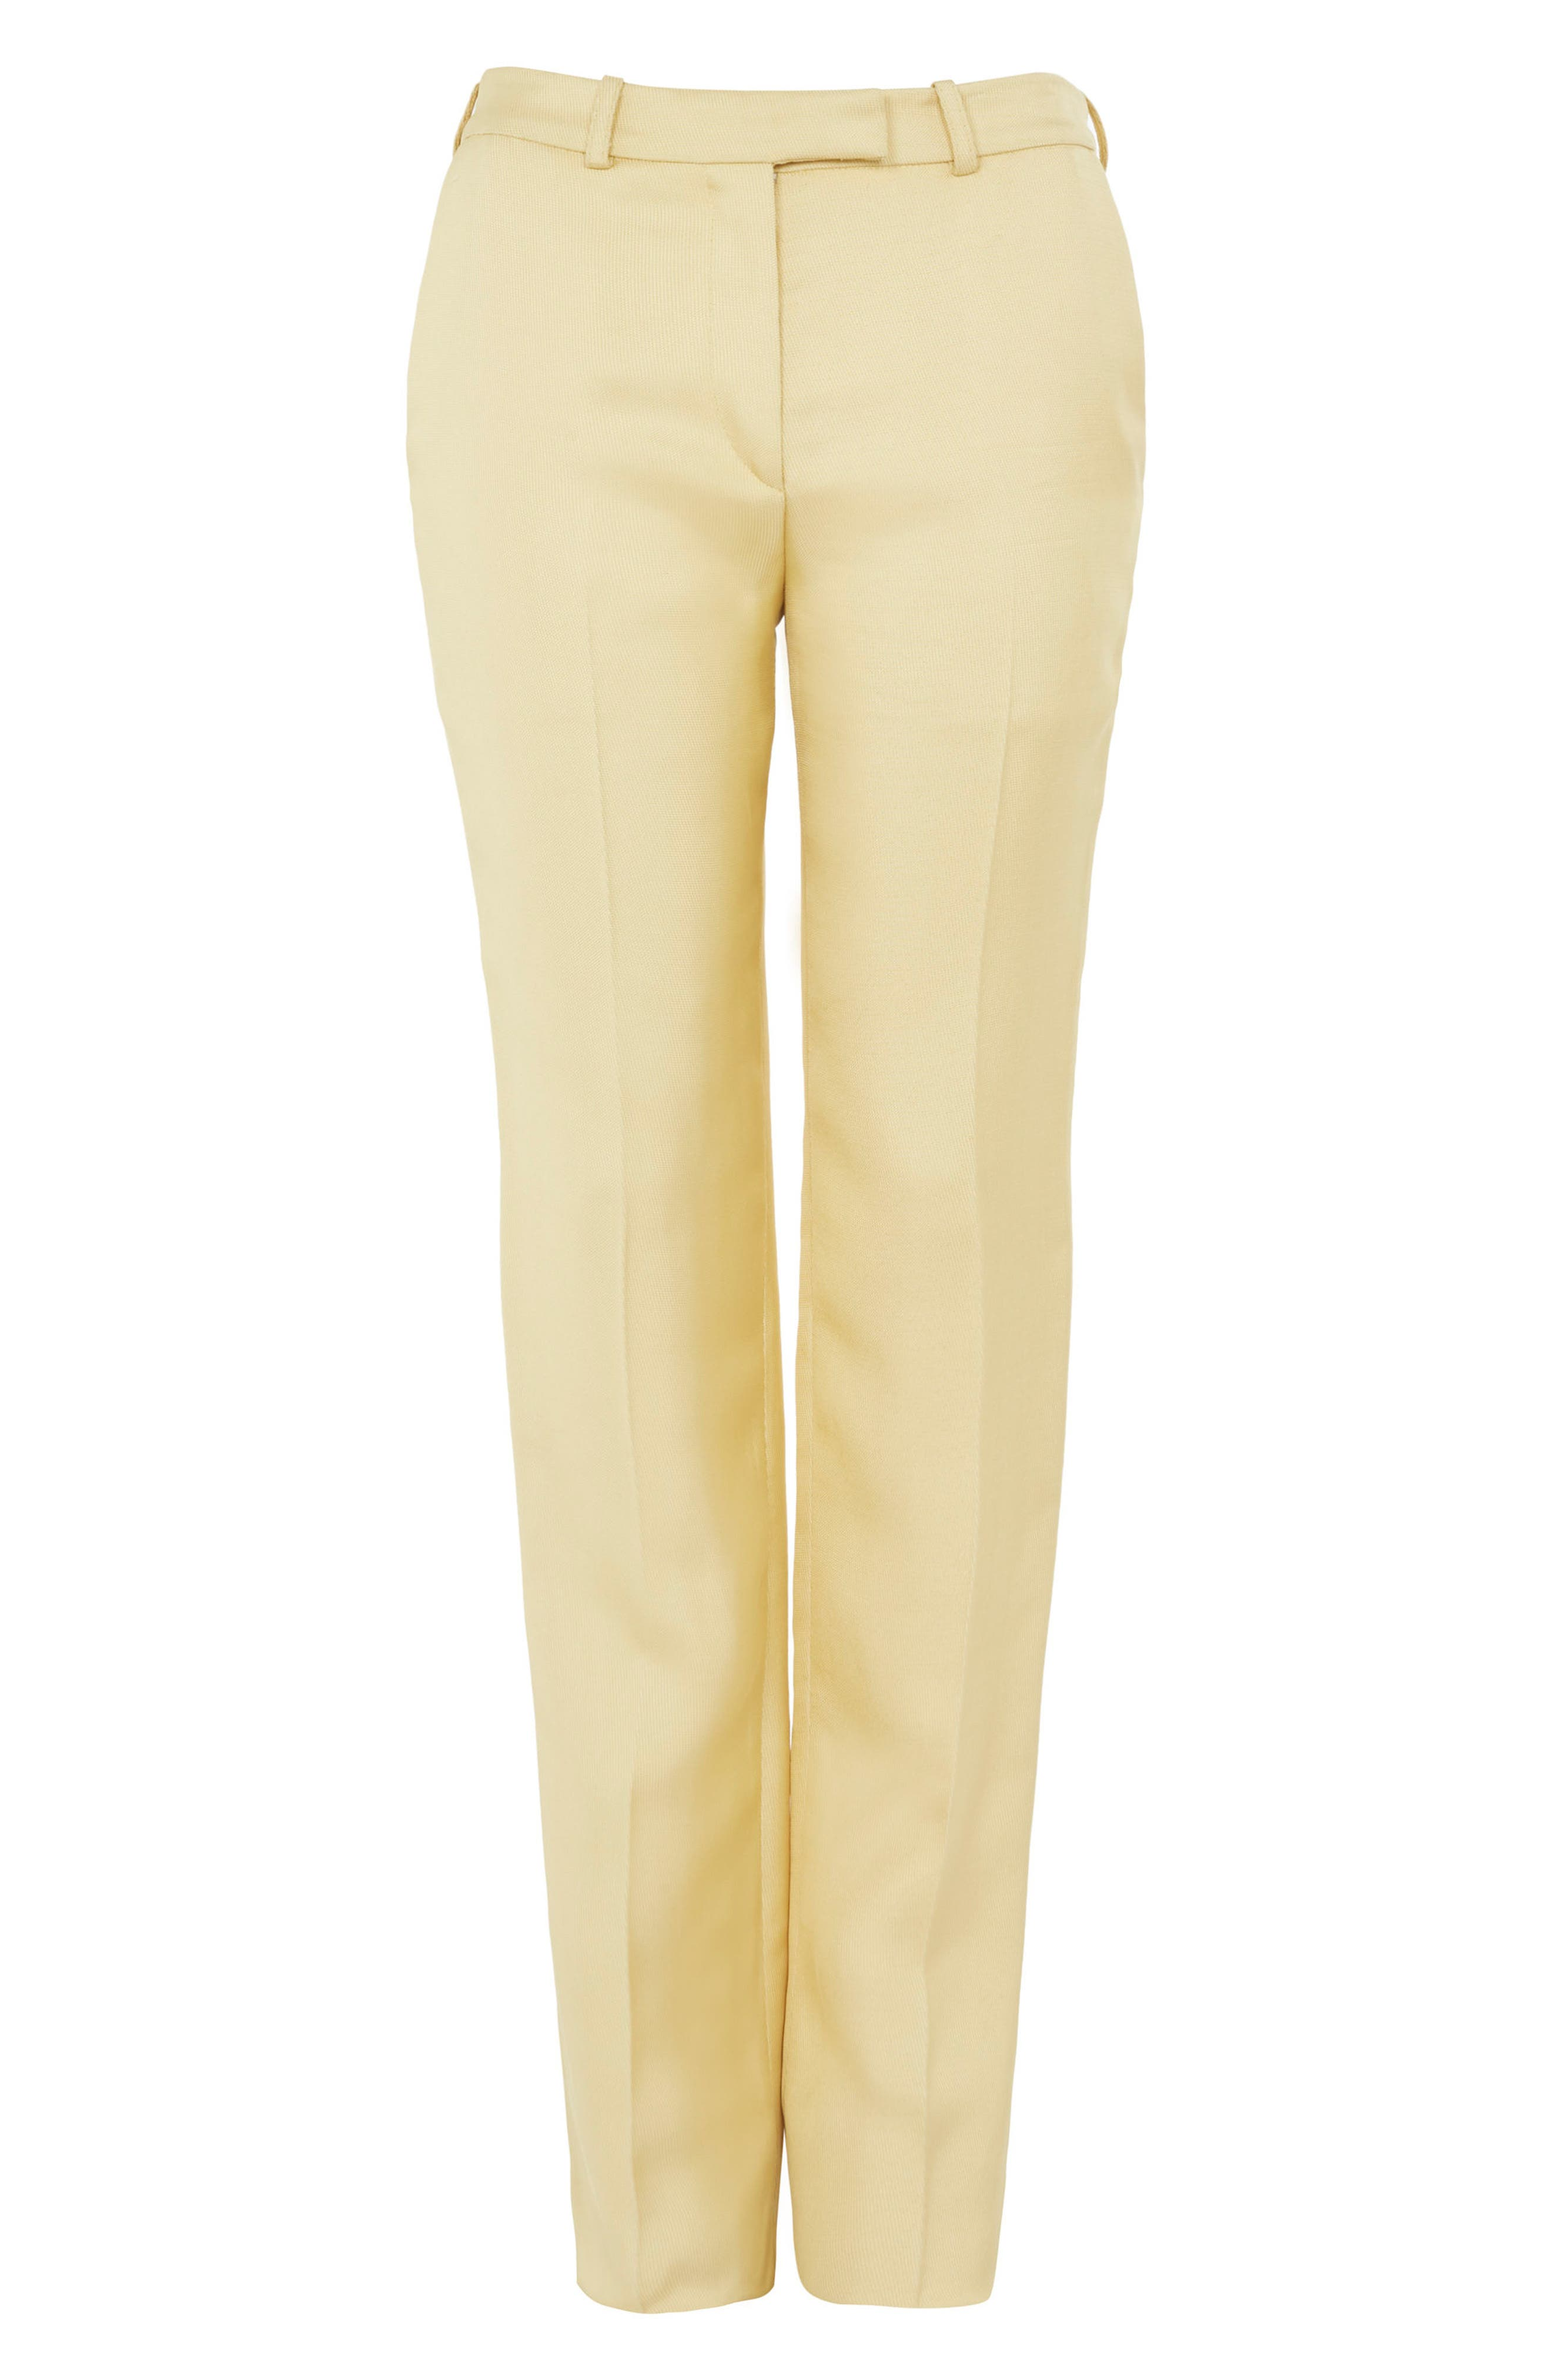 Topshop Textured Trousers